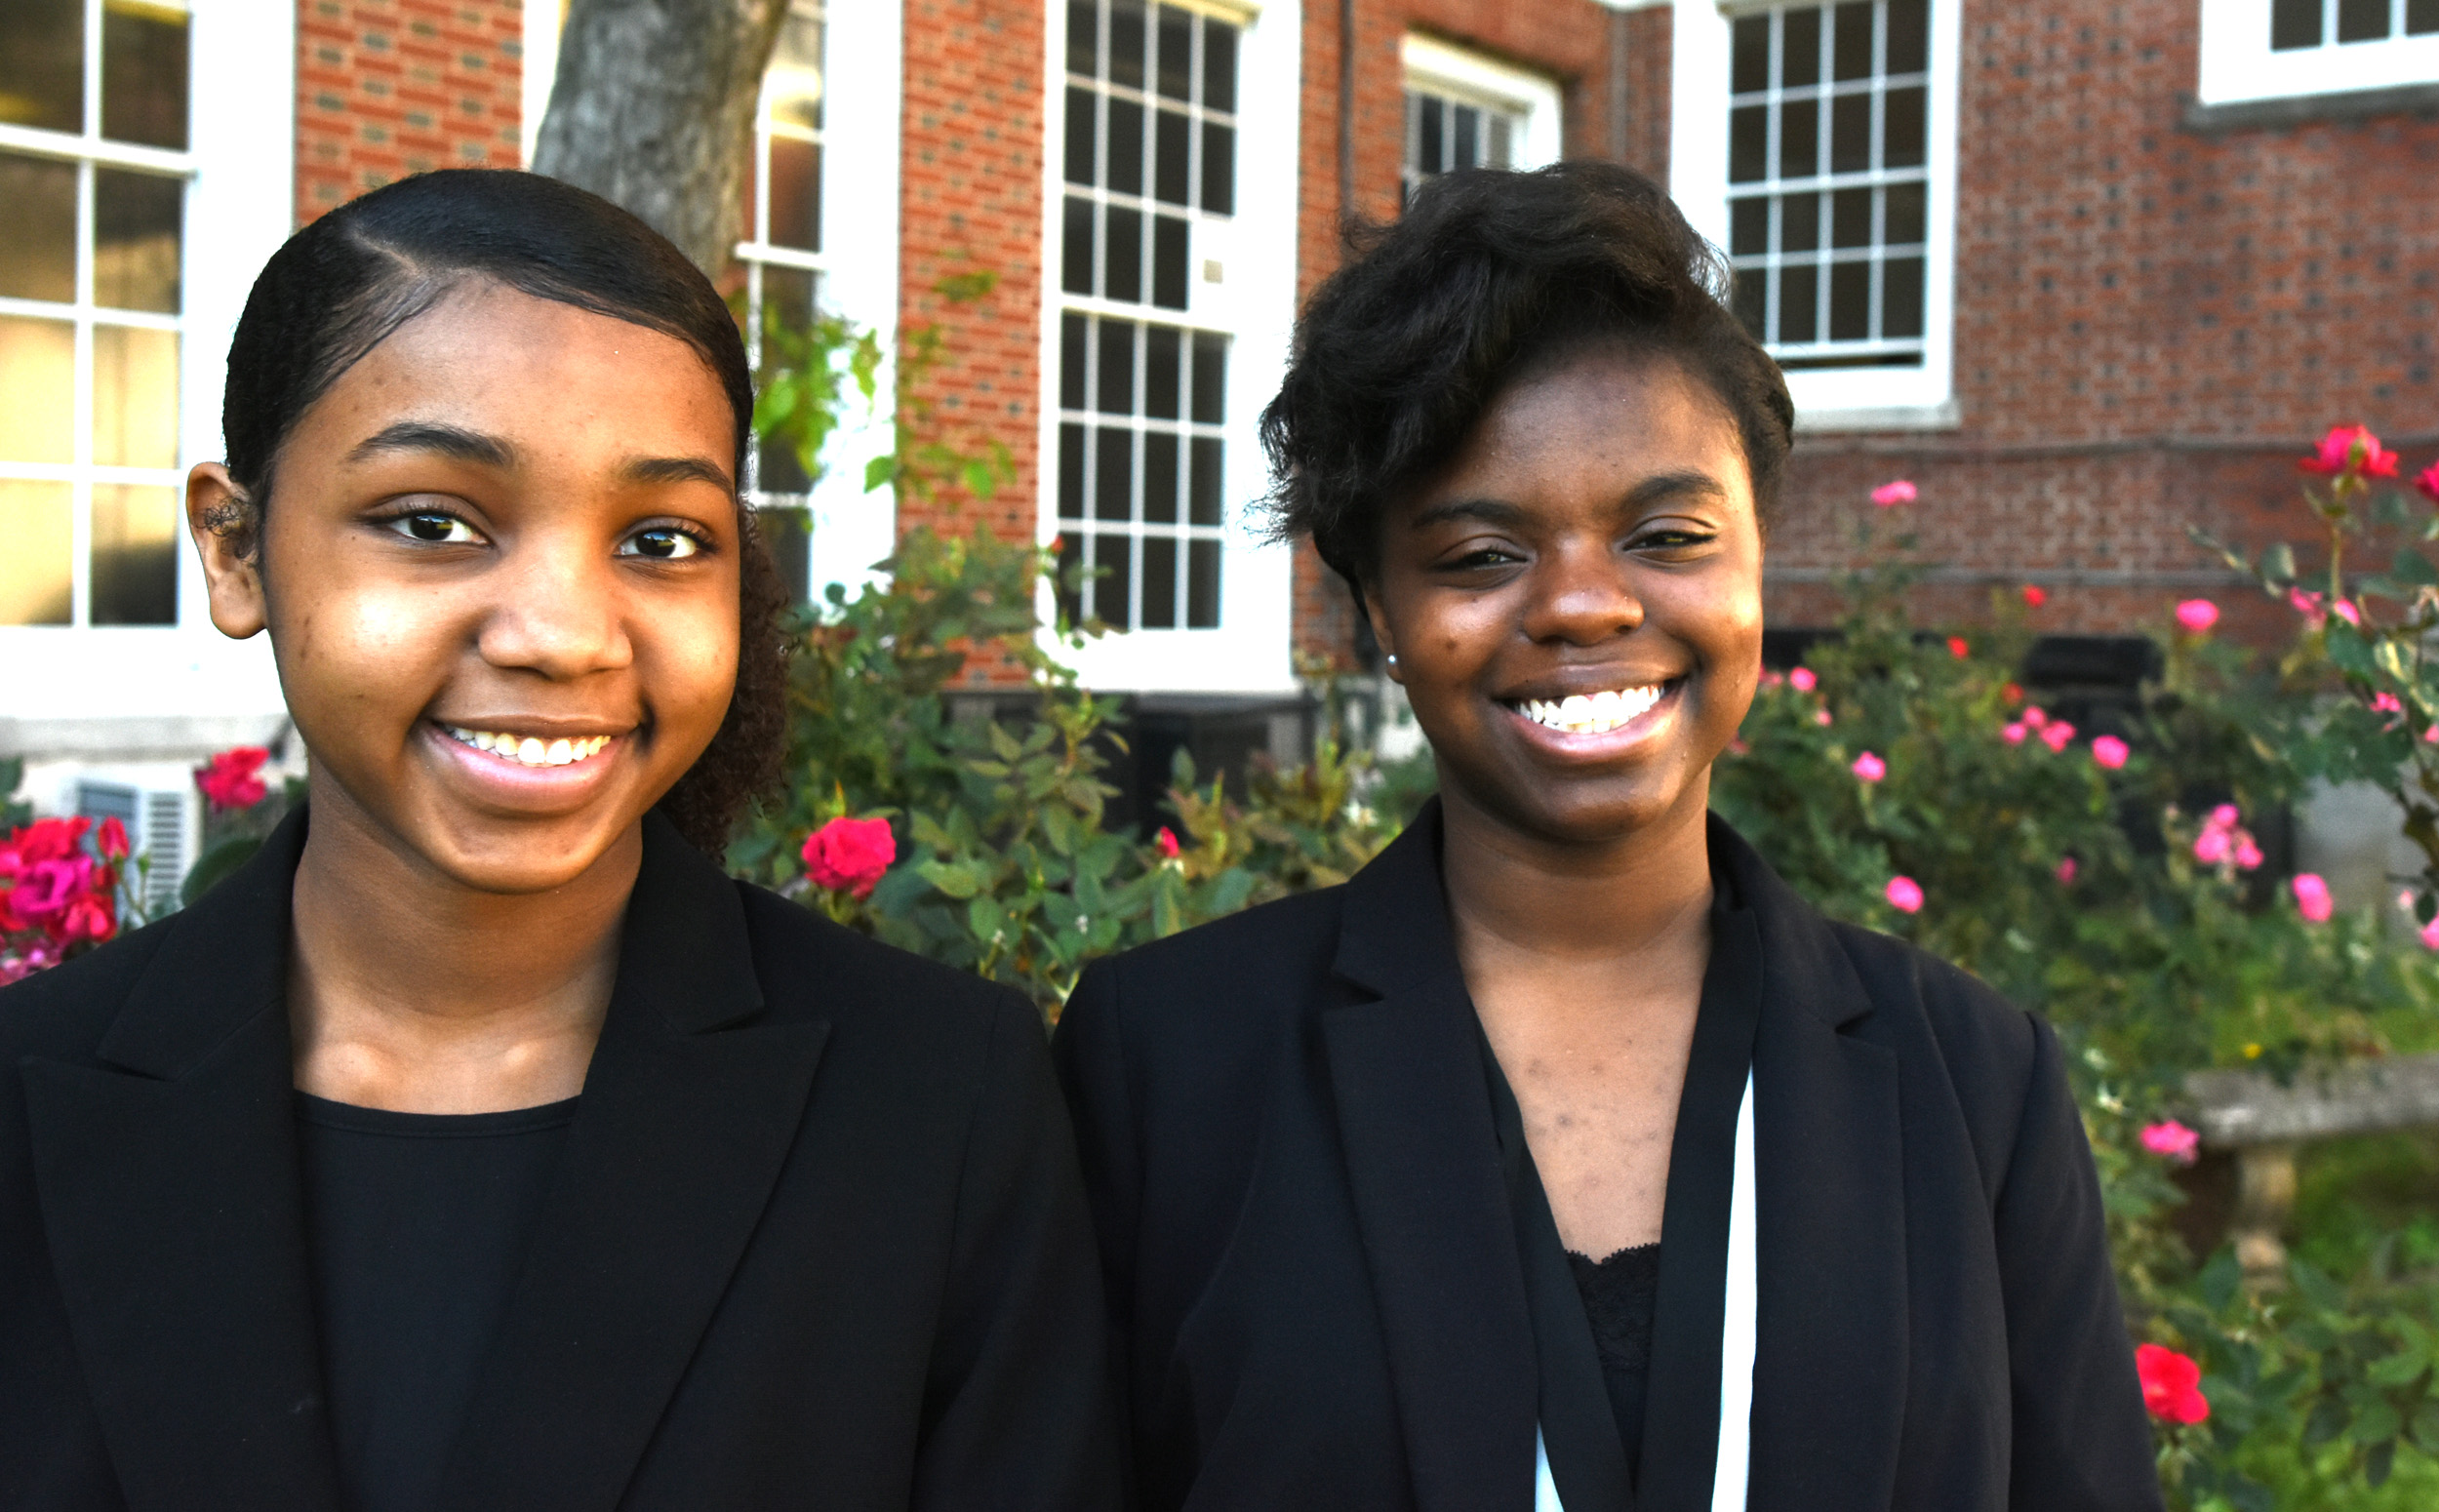 Shae Thomas (left) and Brooklin Ballard, juniors at Ramsay High School, will compete in the 2017 National Speech and Debate Tournament next month in Birmingham. (Solomon Crenshaw Jr./For The Birmingham Times).